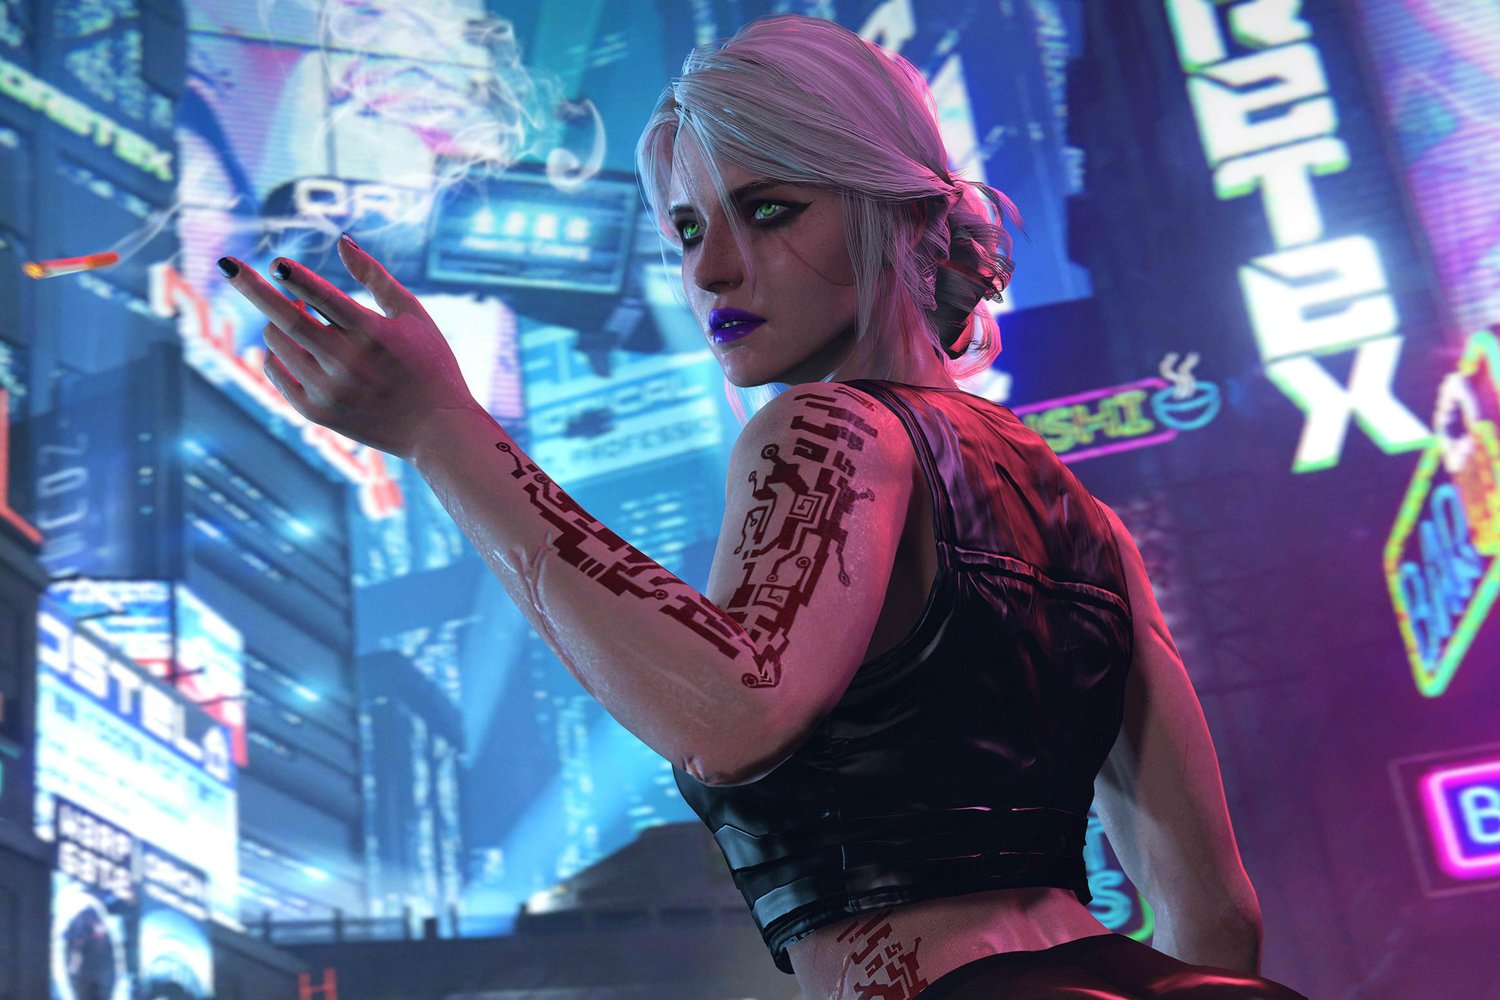 Cyberpunk 2077 Launch Date and Gameplay Details